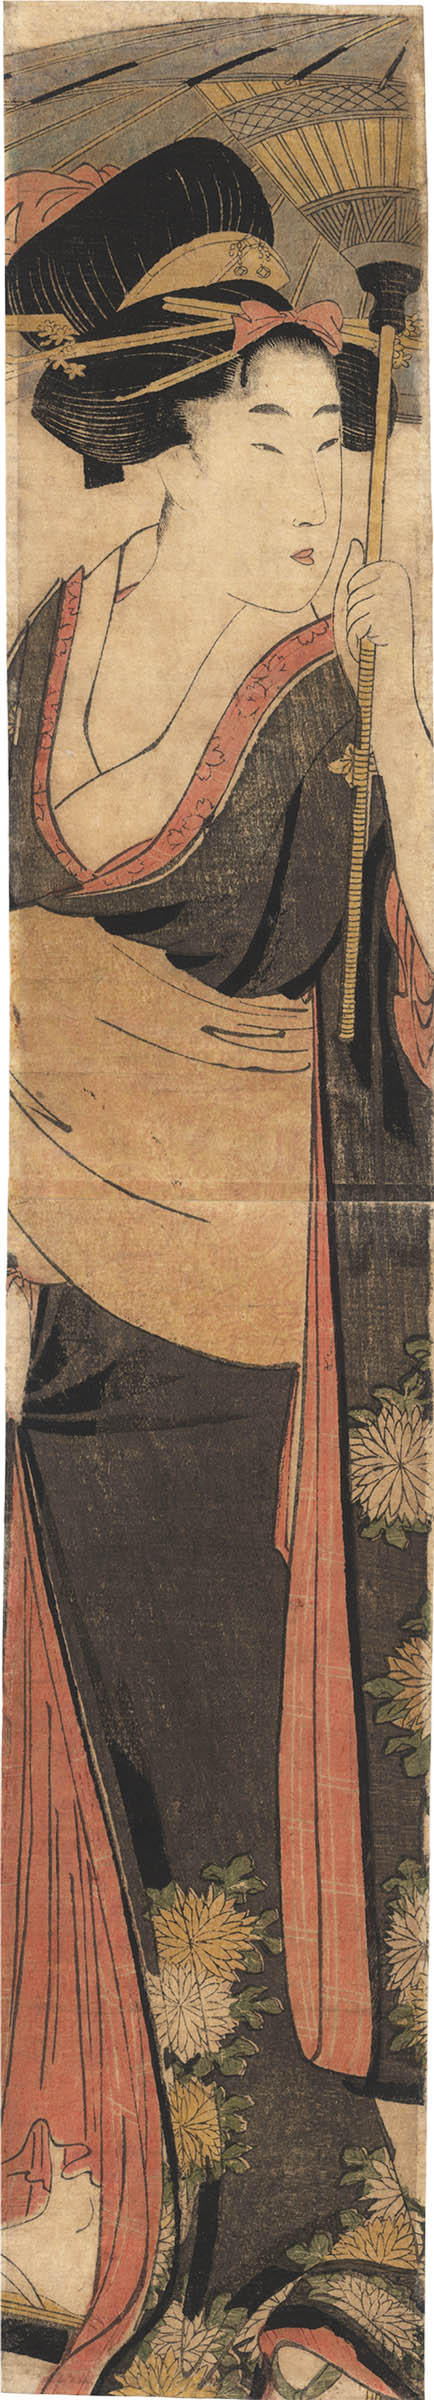 UTAMARO (1753 ?-1806). A lady with umbrella. (Sold)